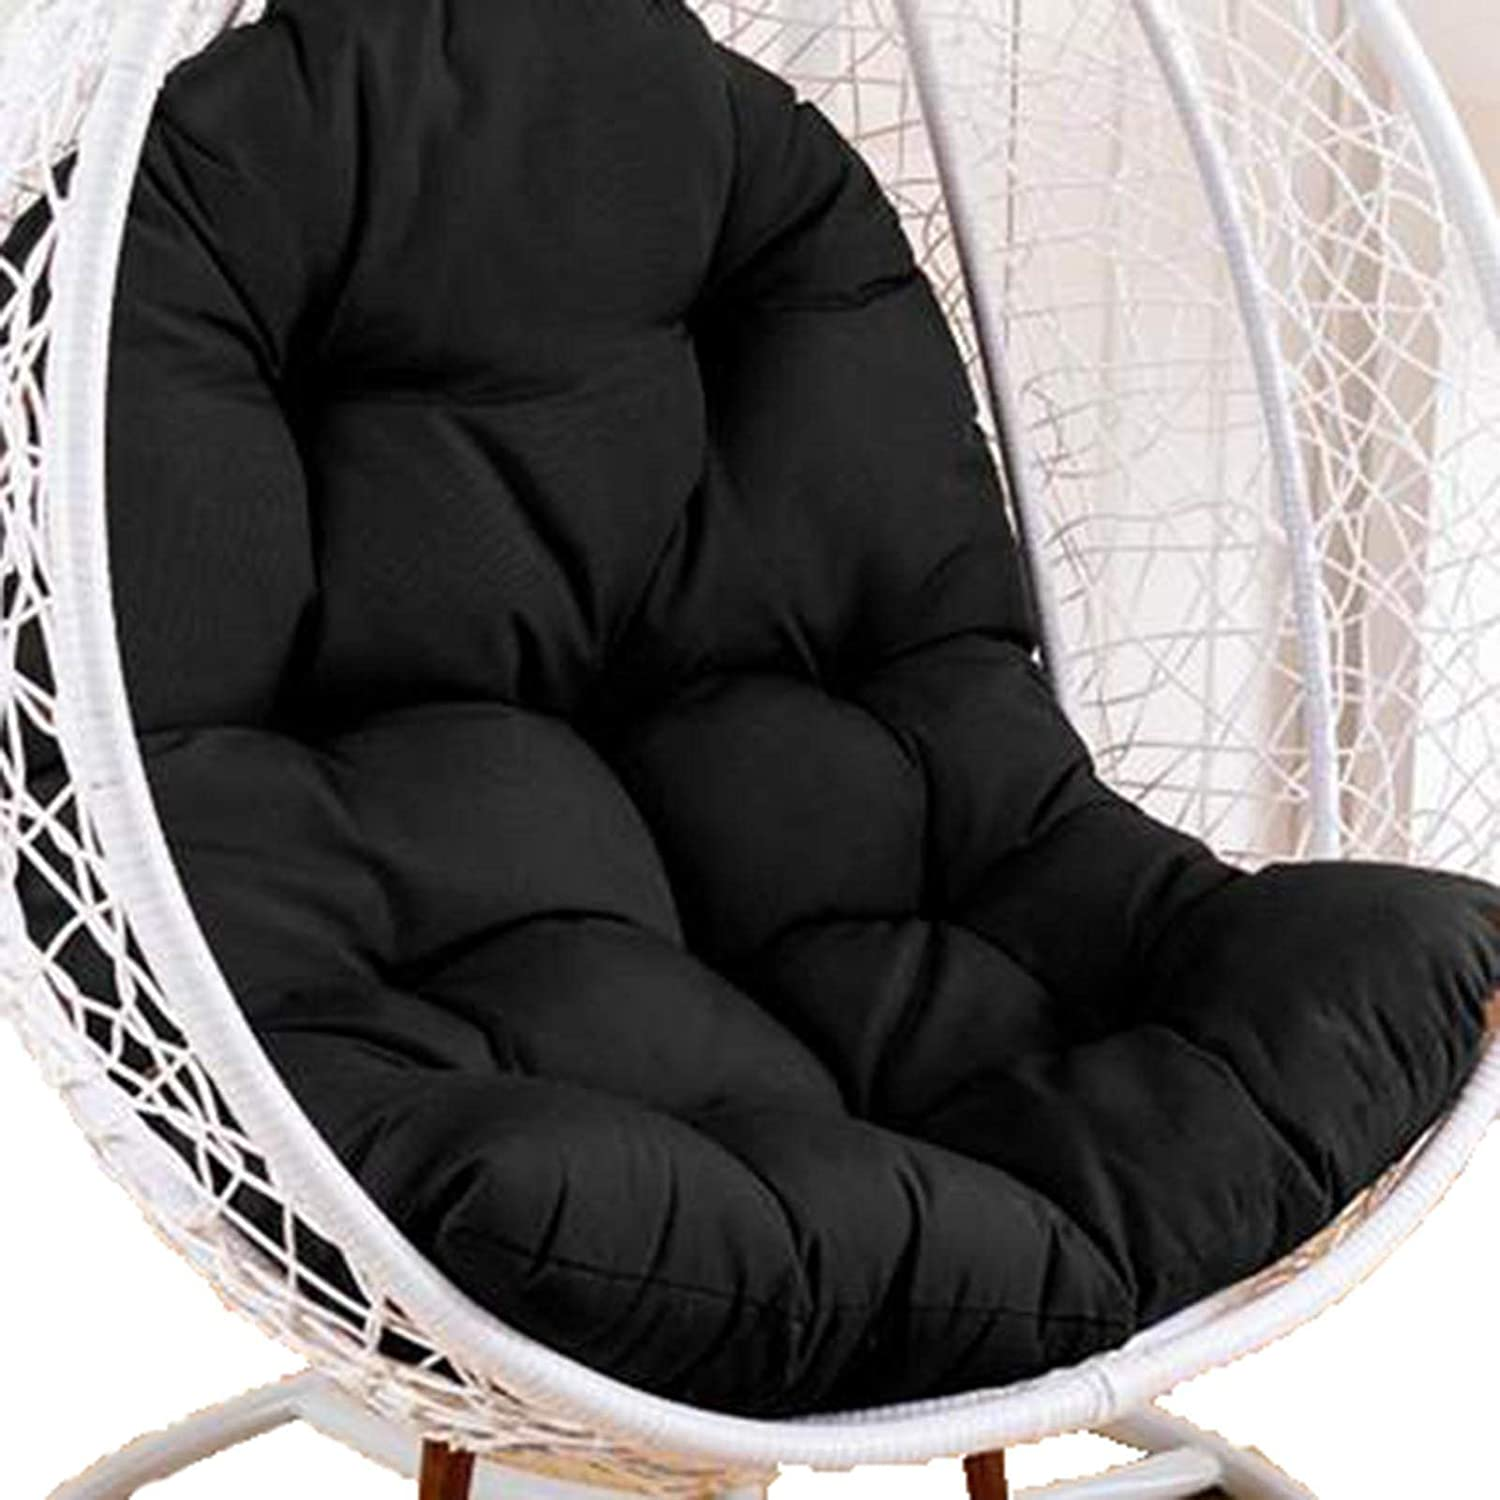 Swing Egg Chair Cushion Ranking TOP6 San Diego Mall Hanging Replacement Large